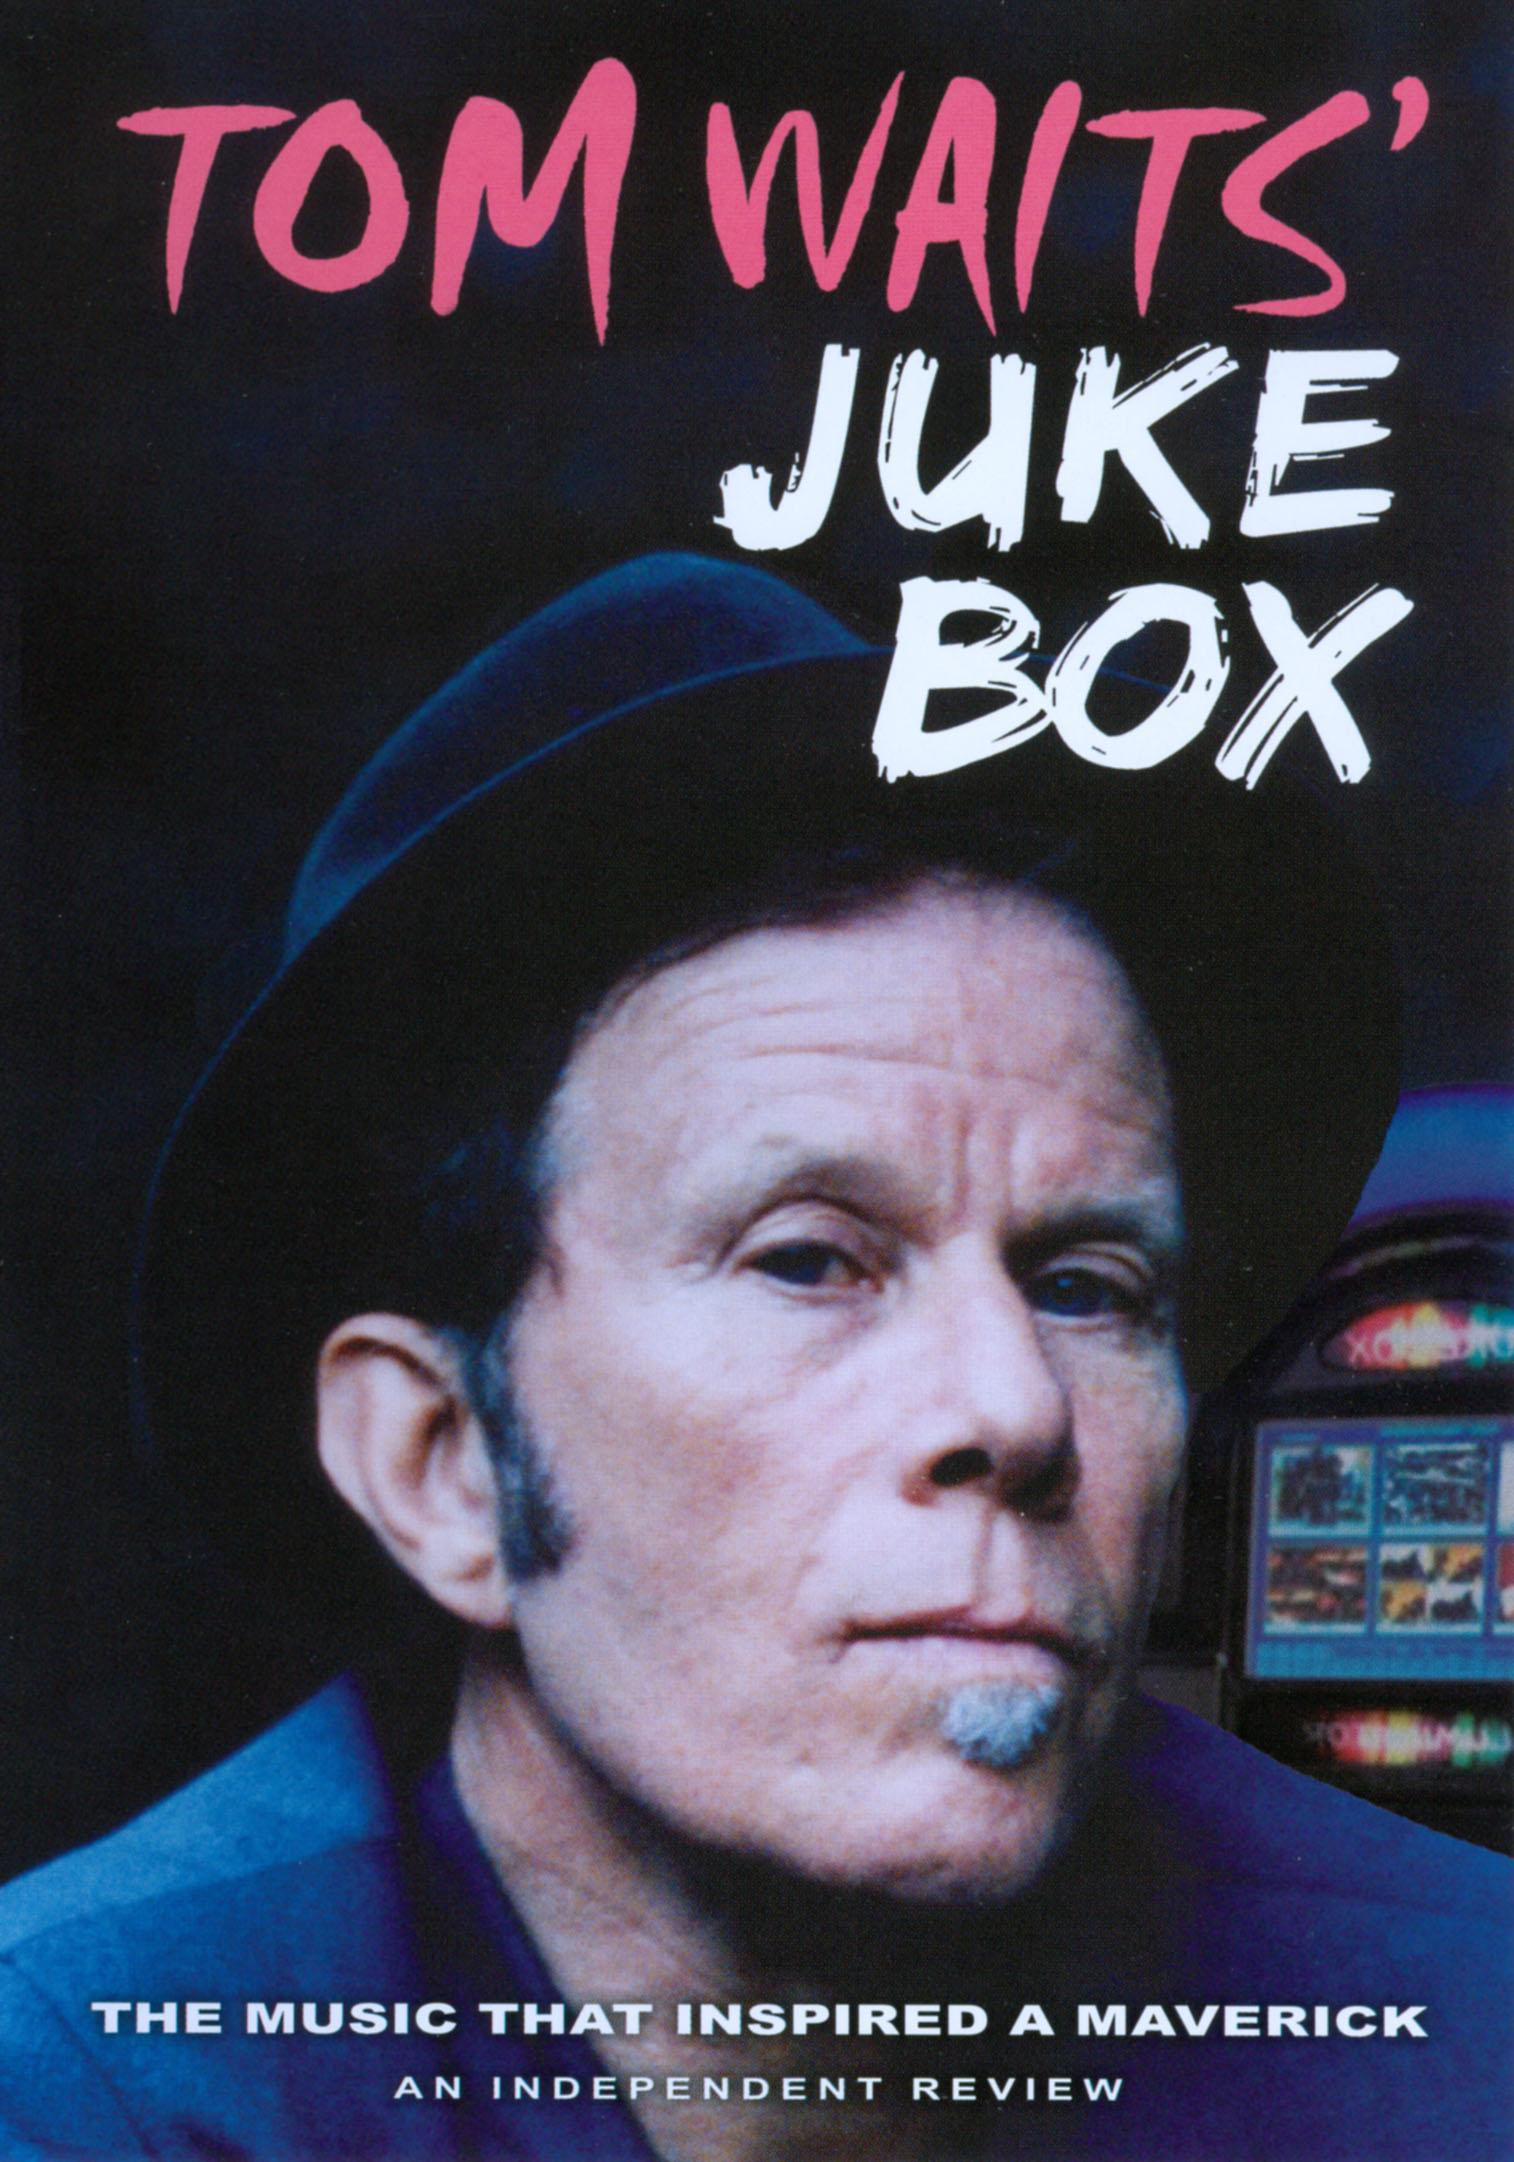 Tom Waits DVD Jukebox